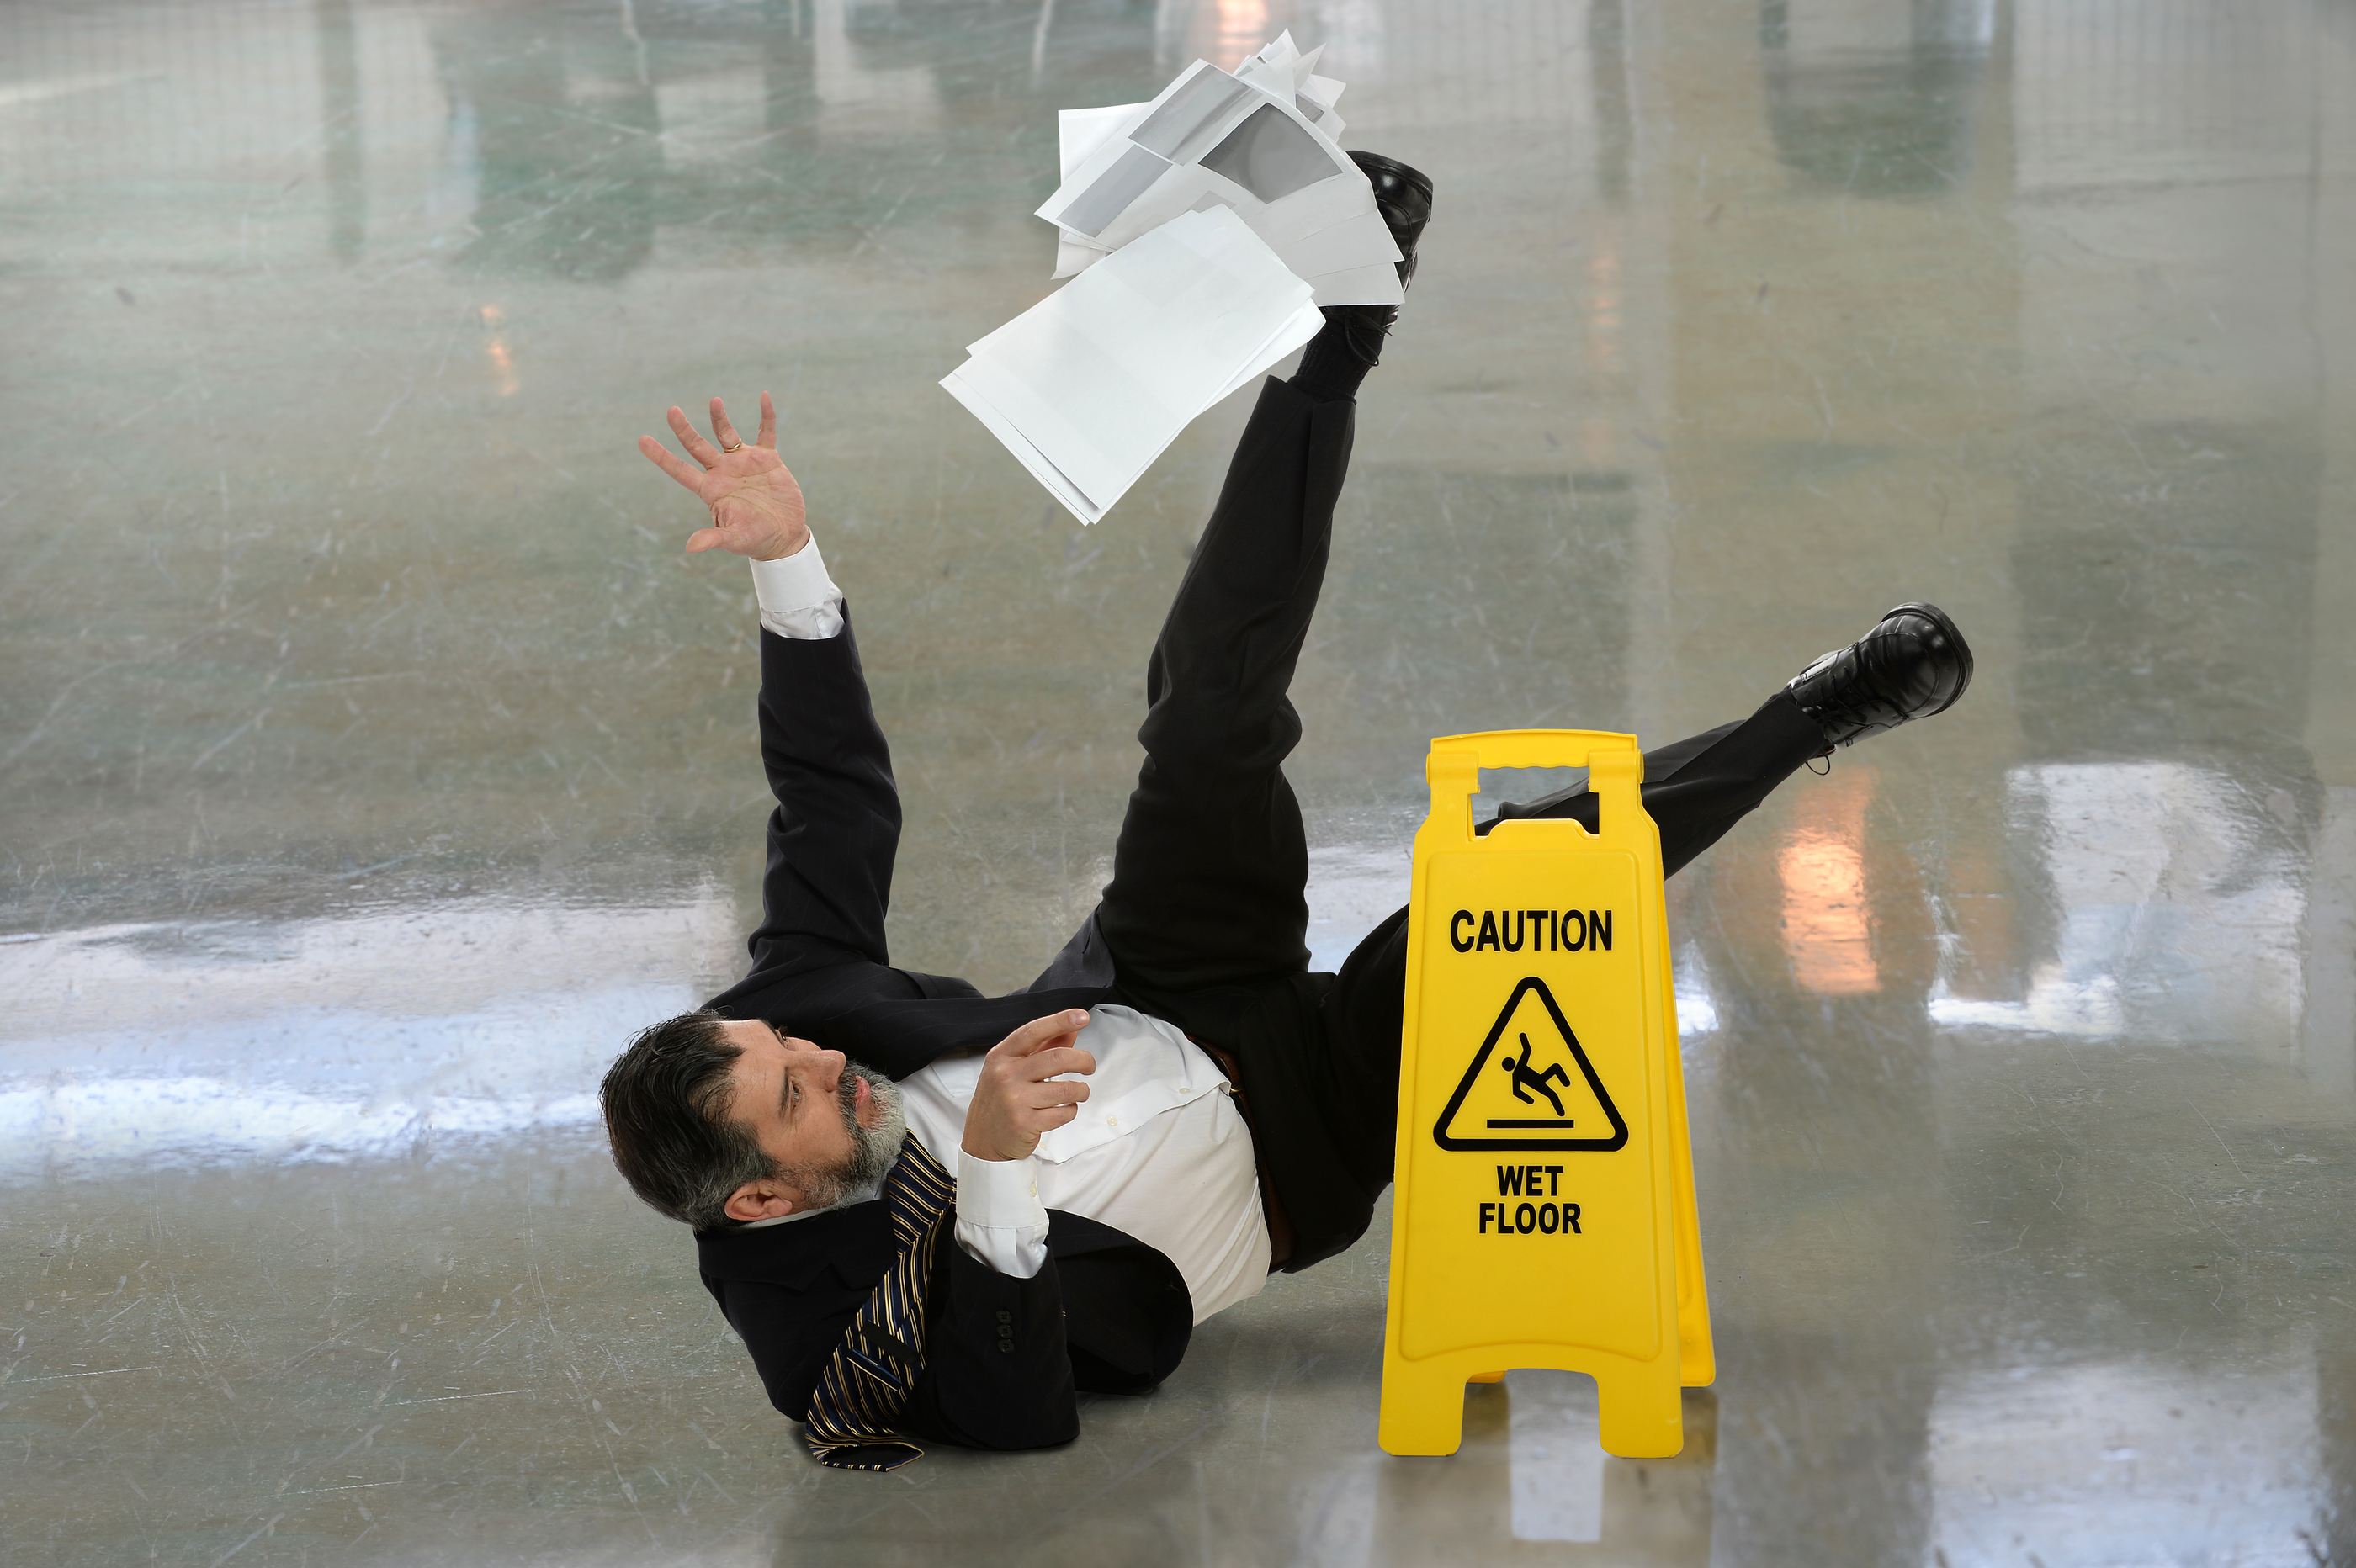 Slip & Fall Injury – Dr. Dean Zusmer Miami Chiropractic Care